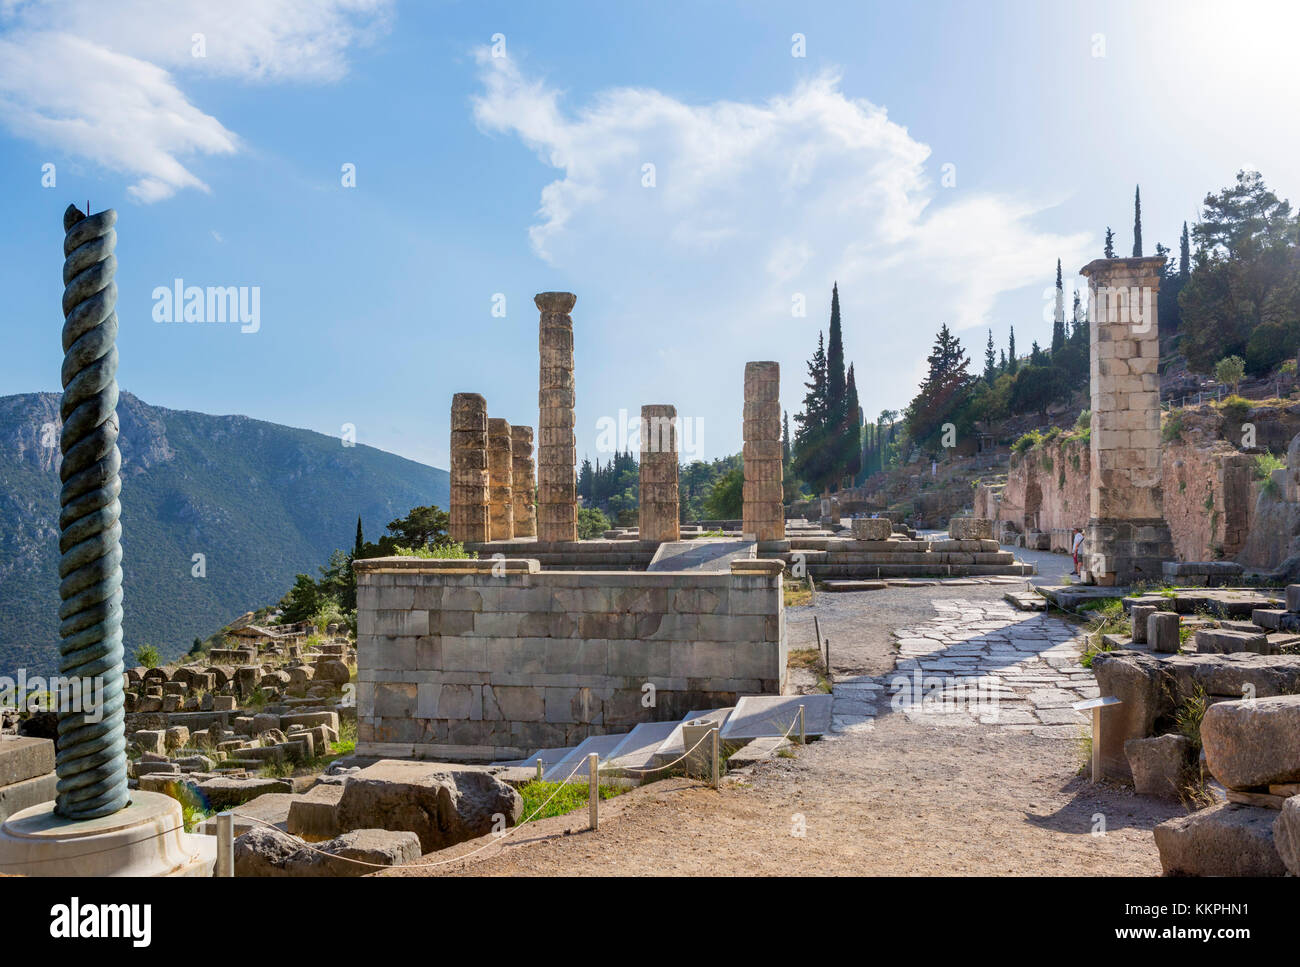 Temple of Apollo with a replica of the Serpent Column in the left foreground, Delphi, Greece - Stock Image